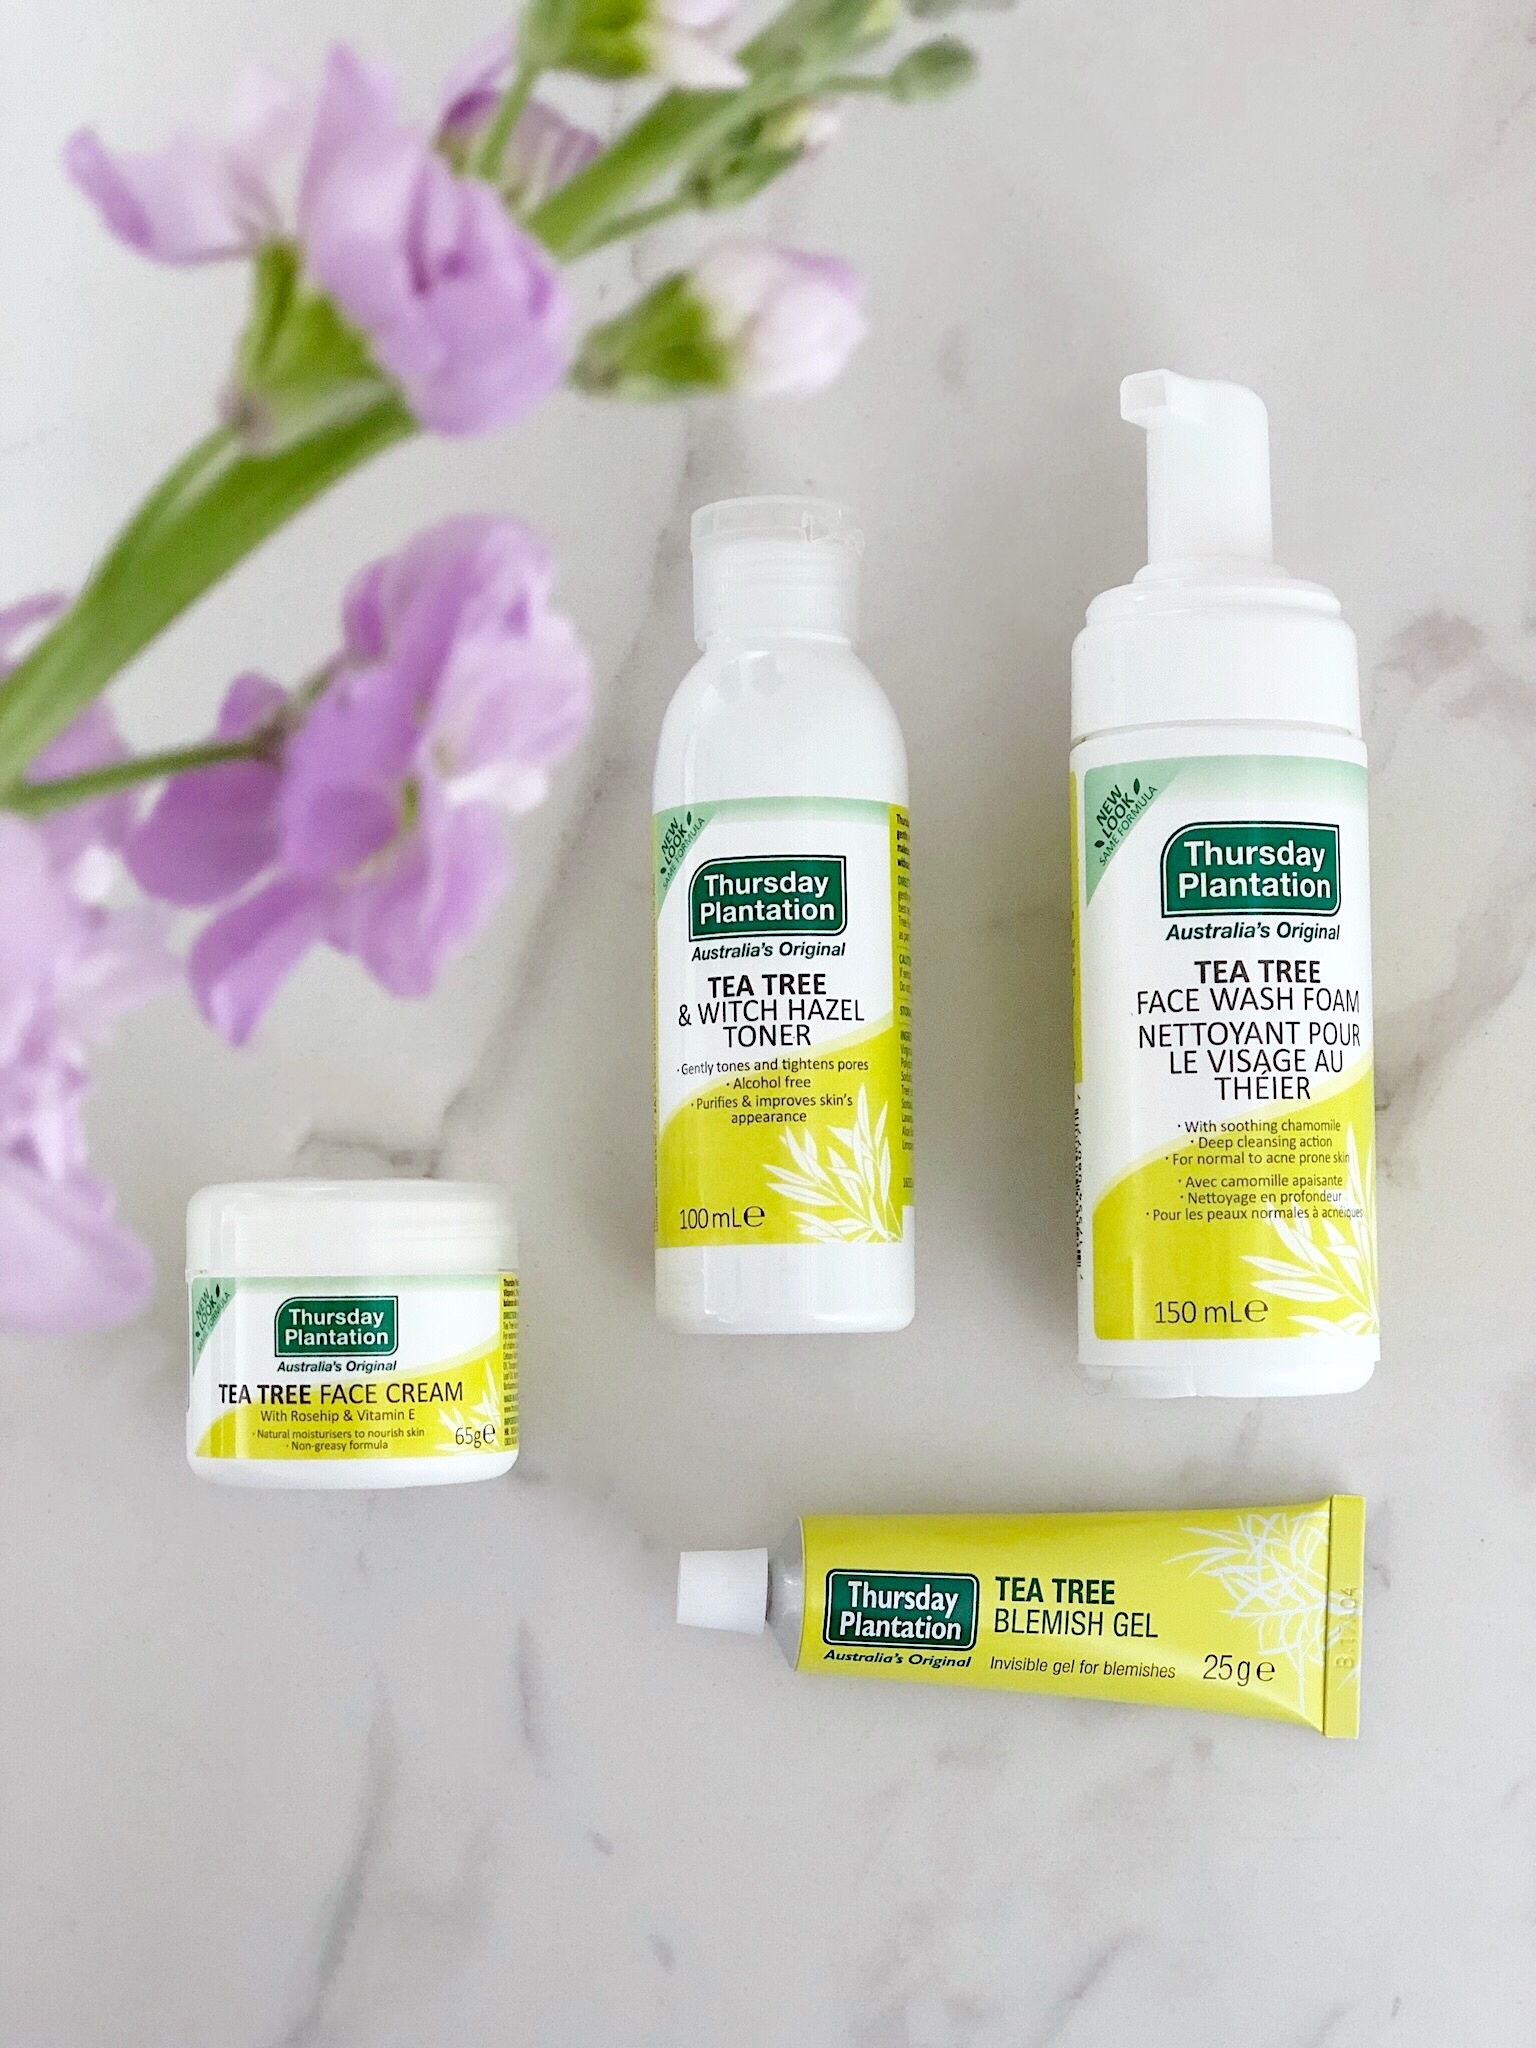 Thursday Plantation Tea Tree Oil recently launched a new and effective skincare range that works to clear acne prone skin in just three easy steps: cleanse, ...